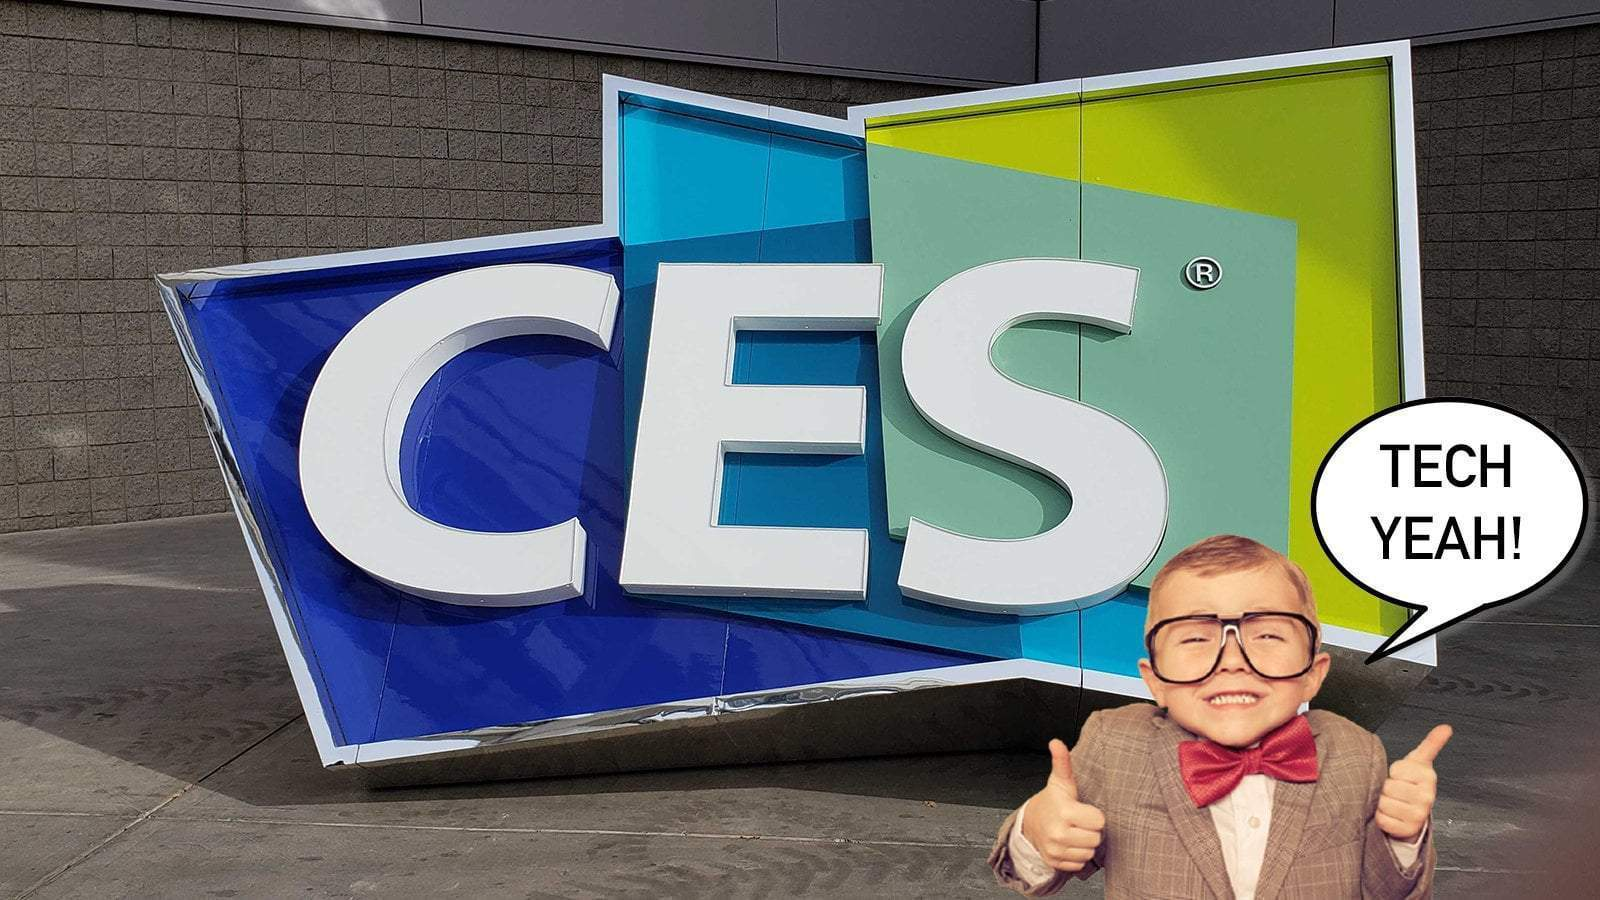 The CES 2019 Products That Will Make You Say